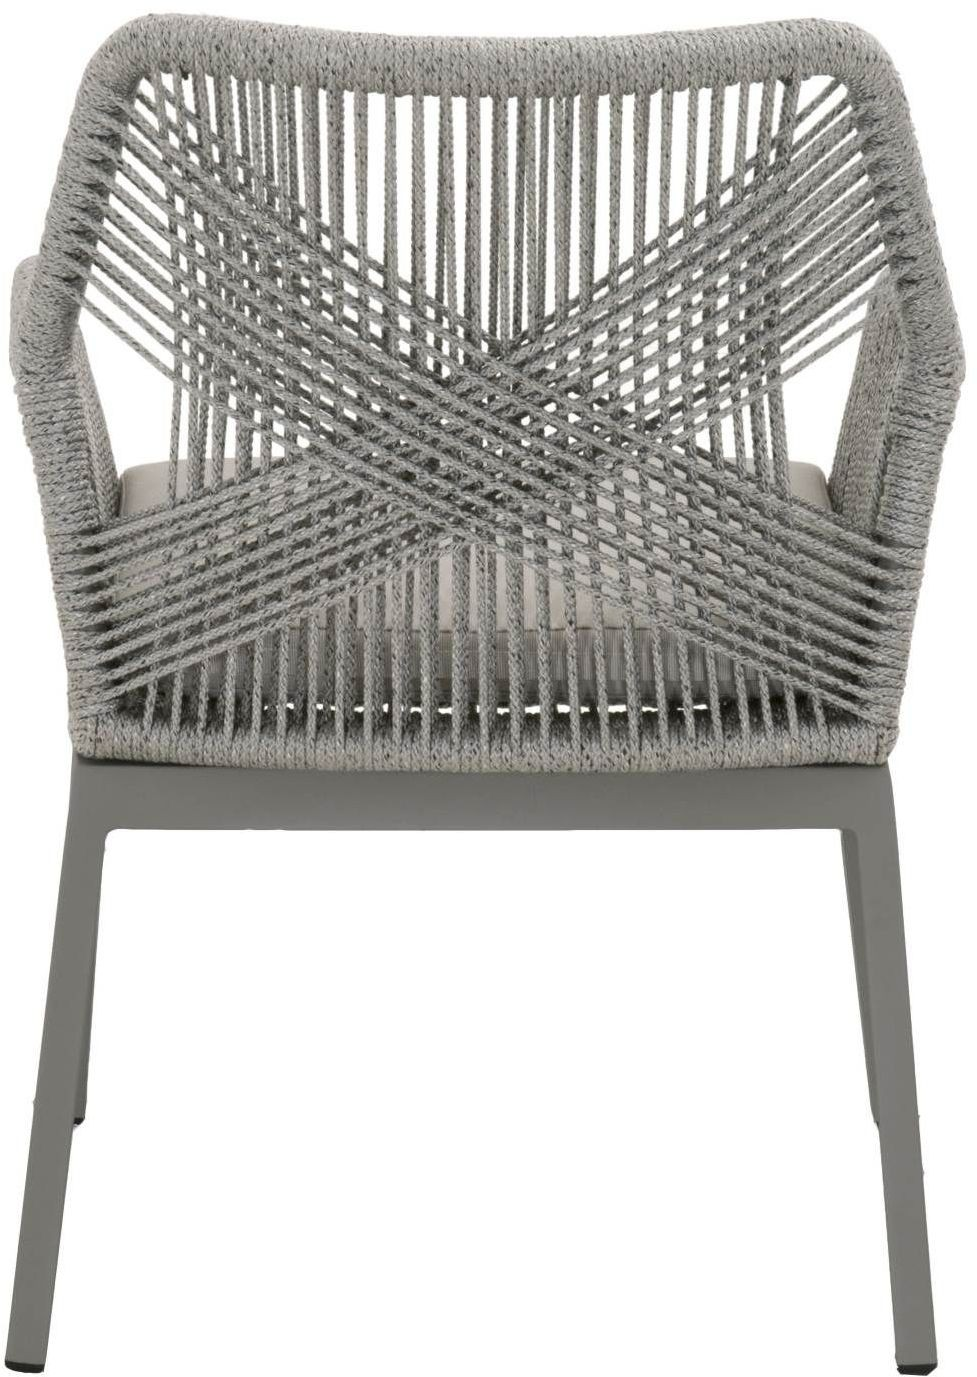 ea66bf19b414 ... Loom Platinum Rope Outdoor Dining Arm Chair Set of 2 Media Gallery 4